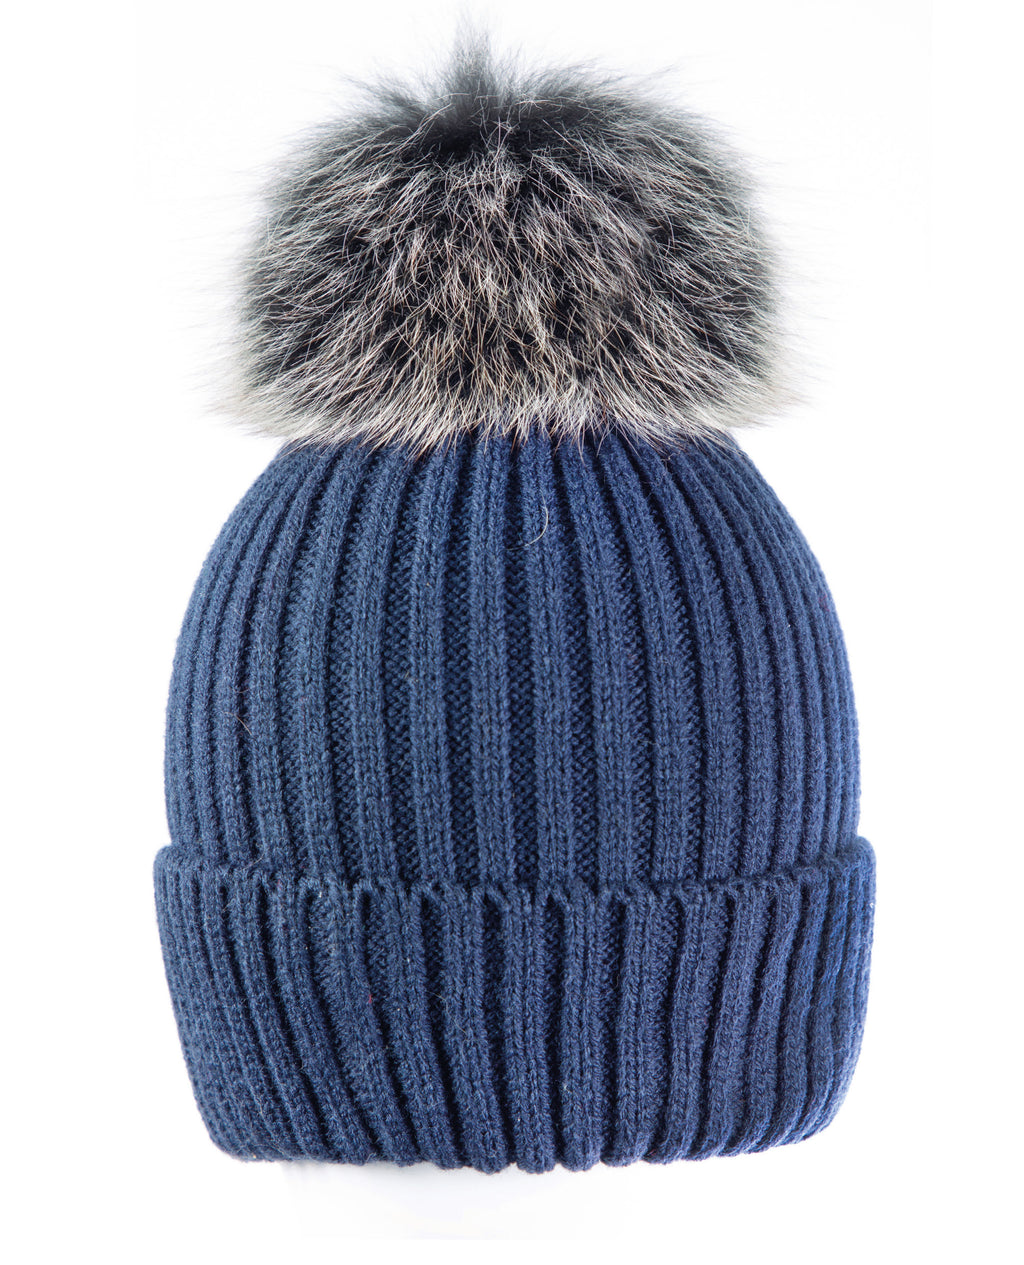 Blue/blk-wht Beanie Hat with exclusive Pom Pom